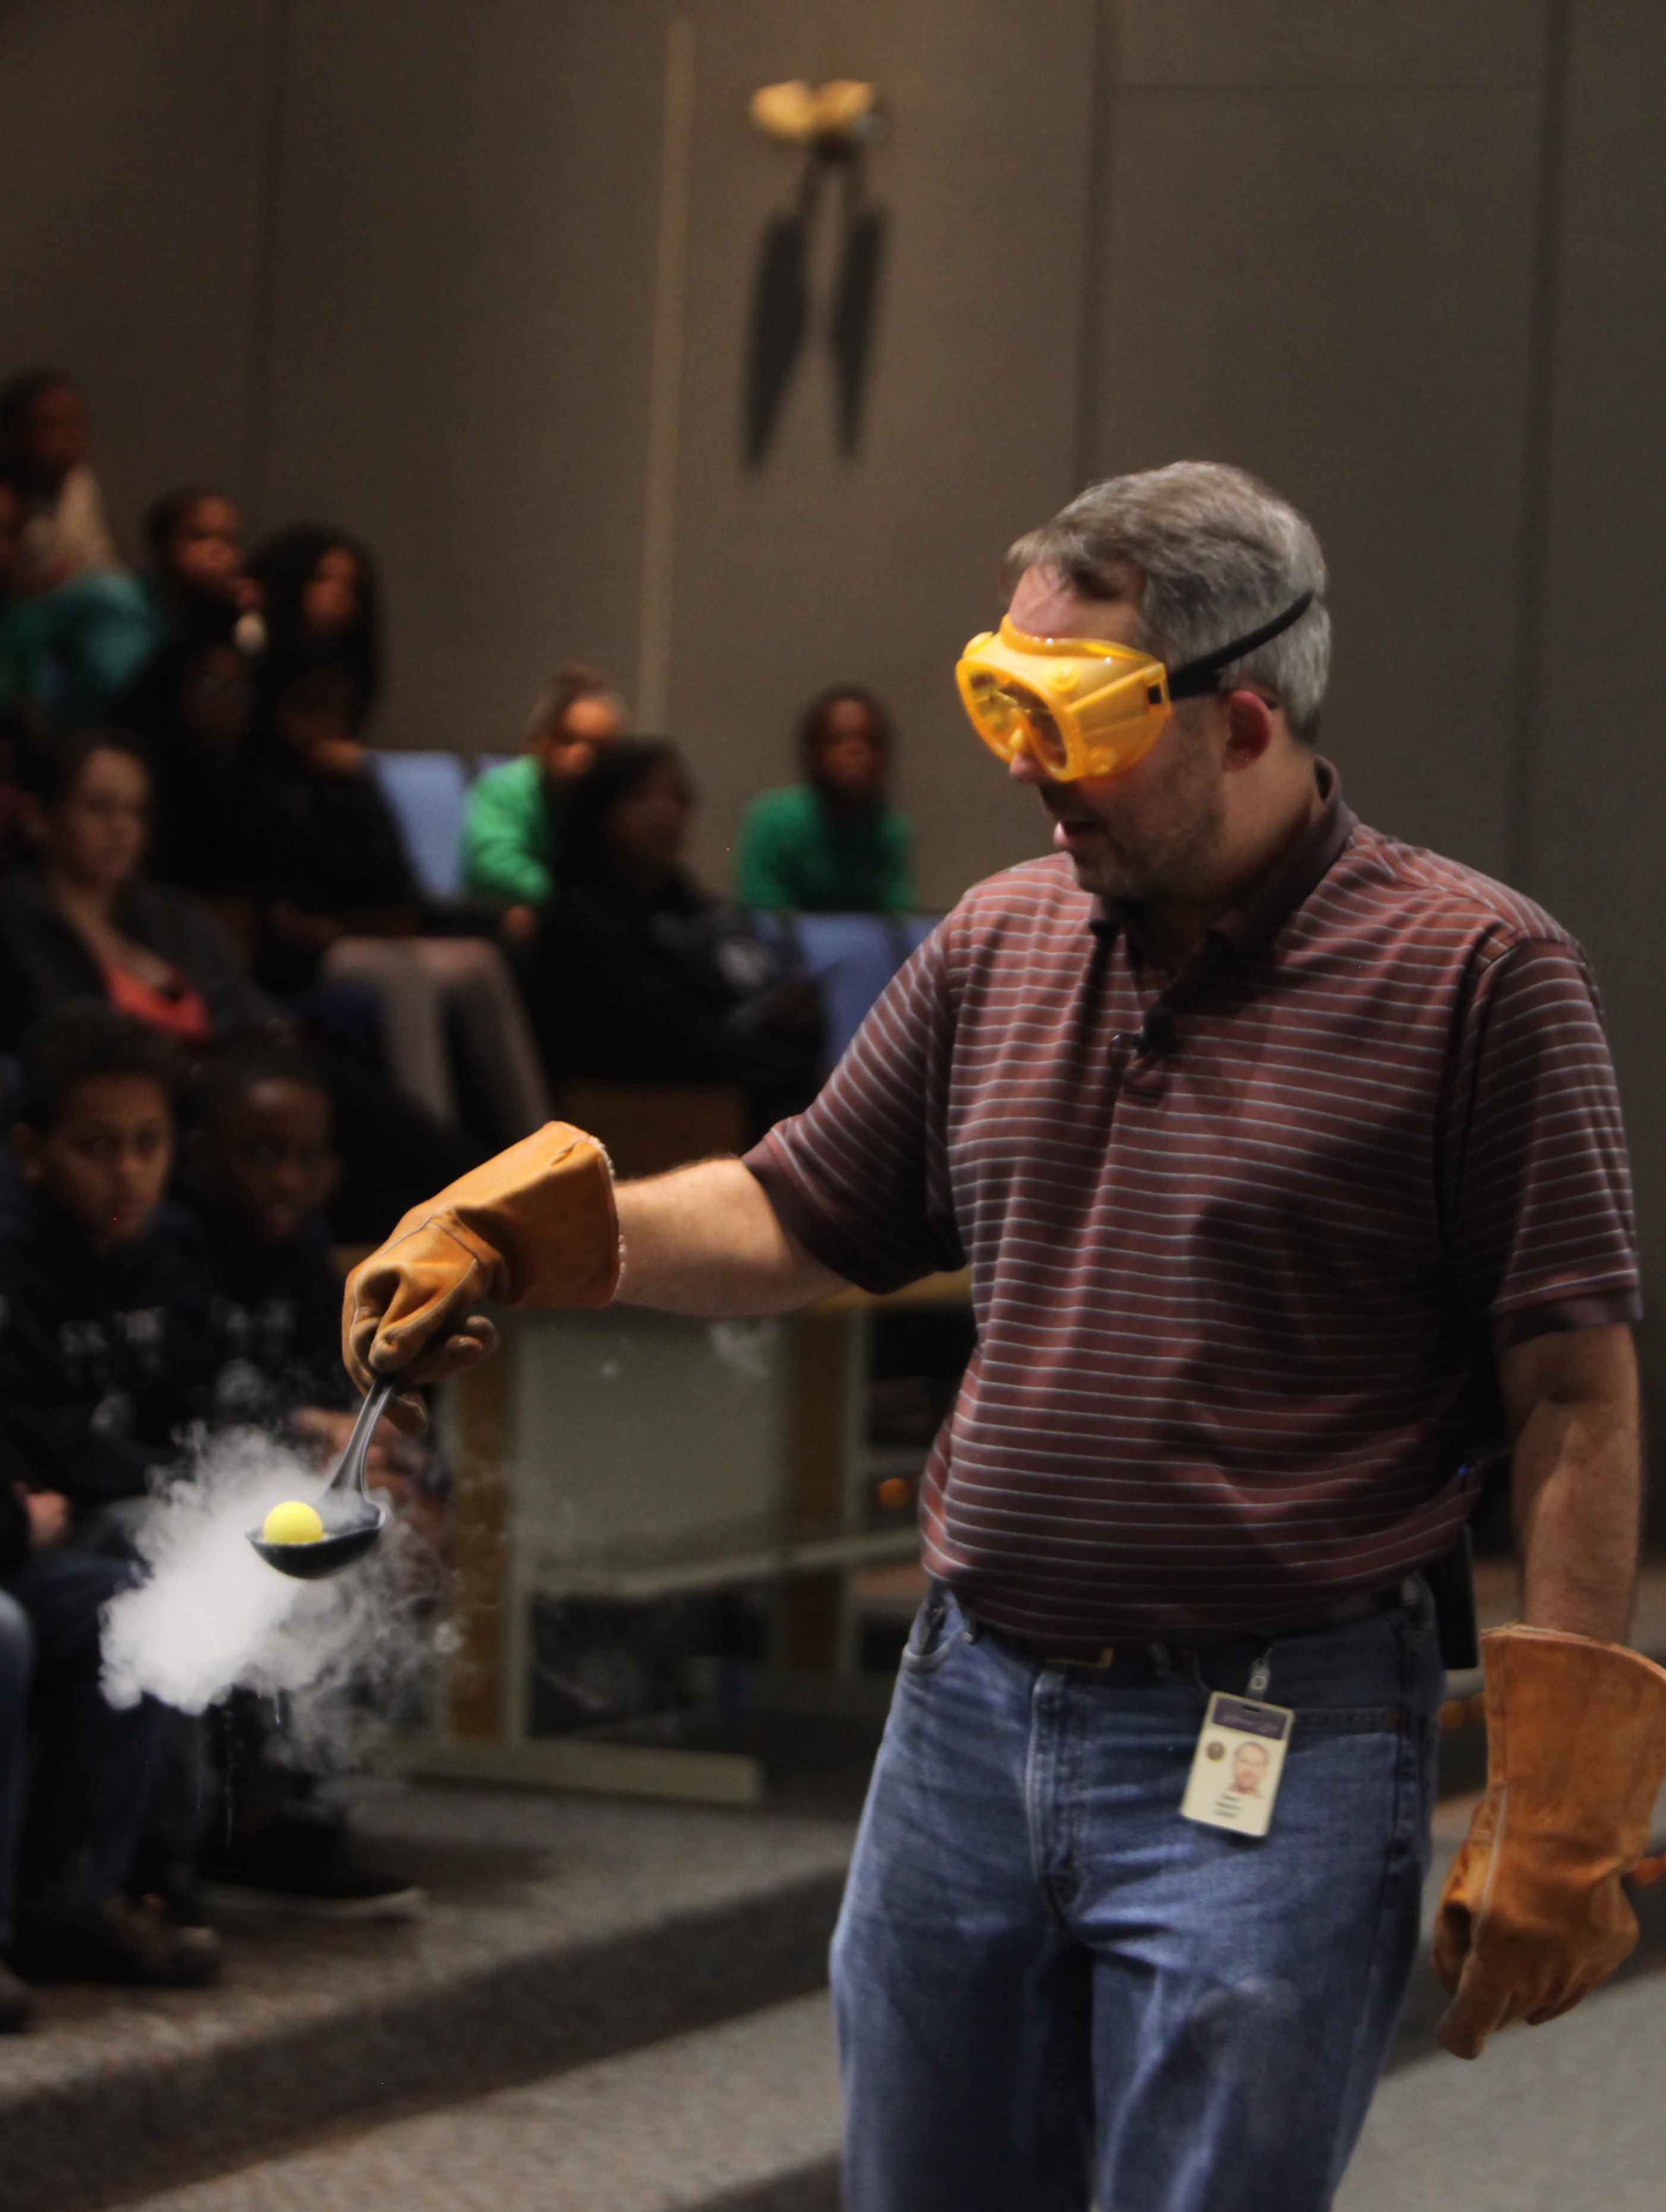 Steve Gagnon holds a ball in a ladle filled with liquid nitrogen